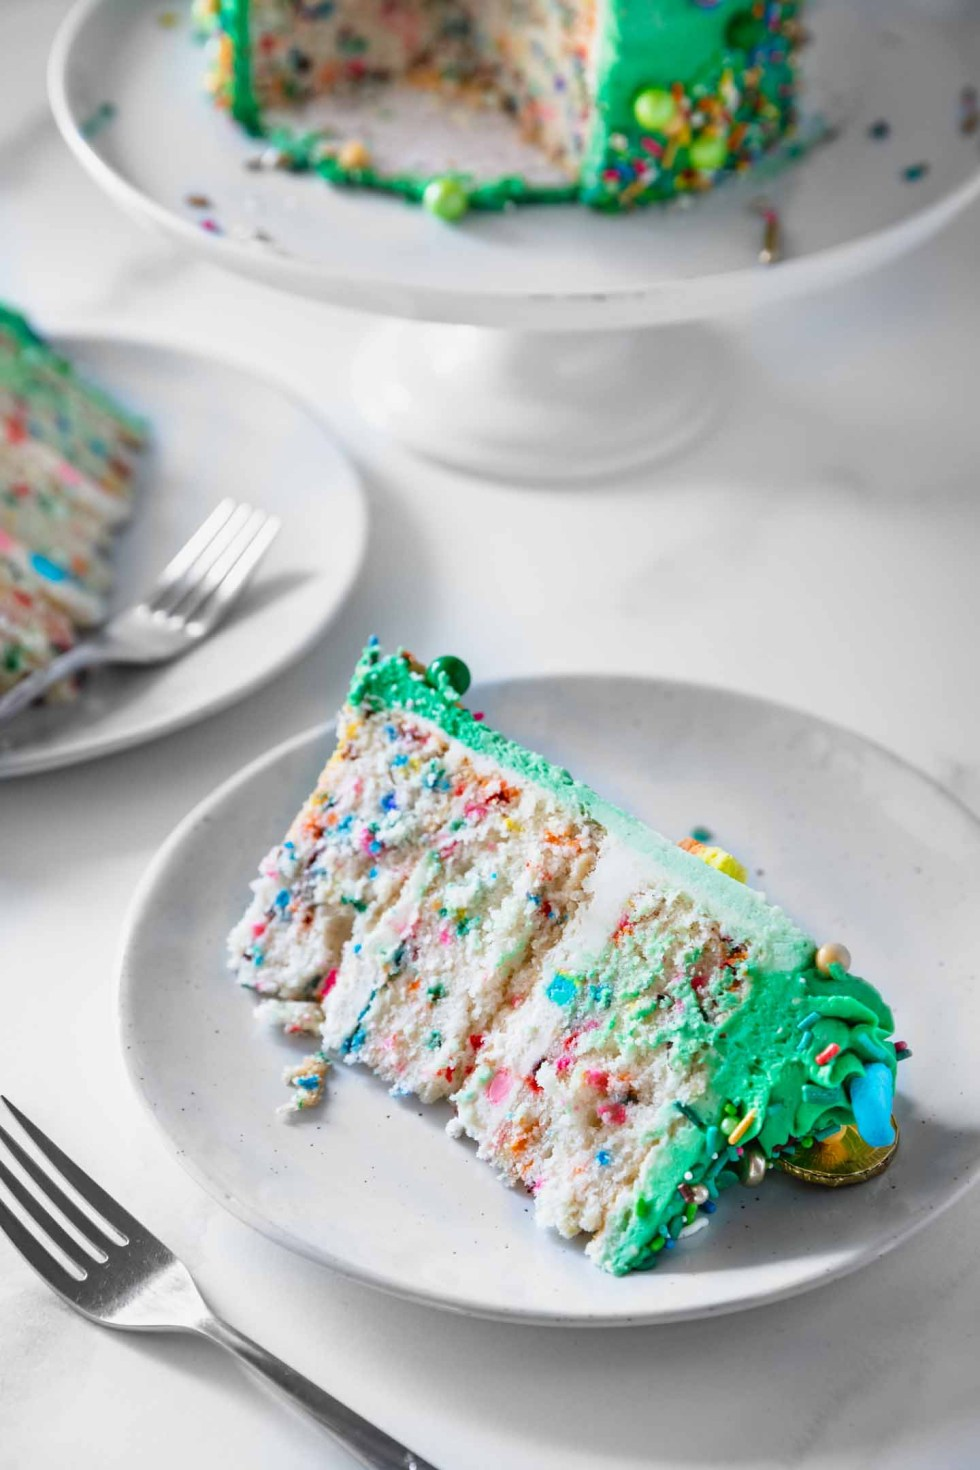 Close-up of a cake slice on a white plate with lucky charms marshmallows mixed in.